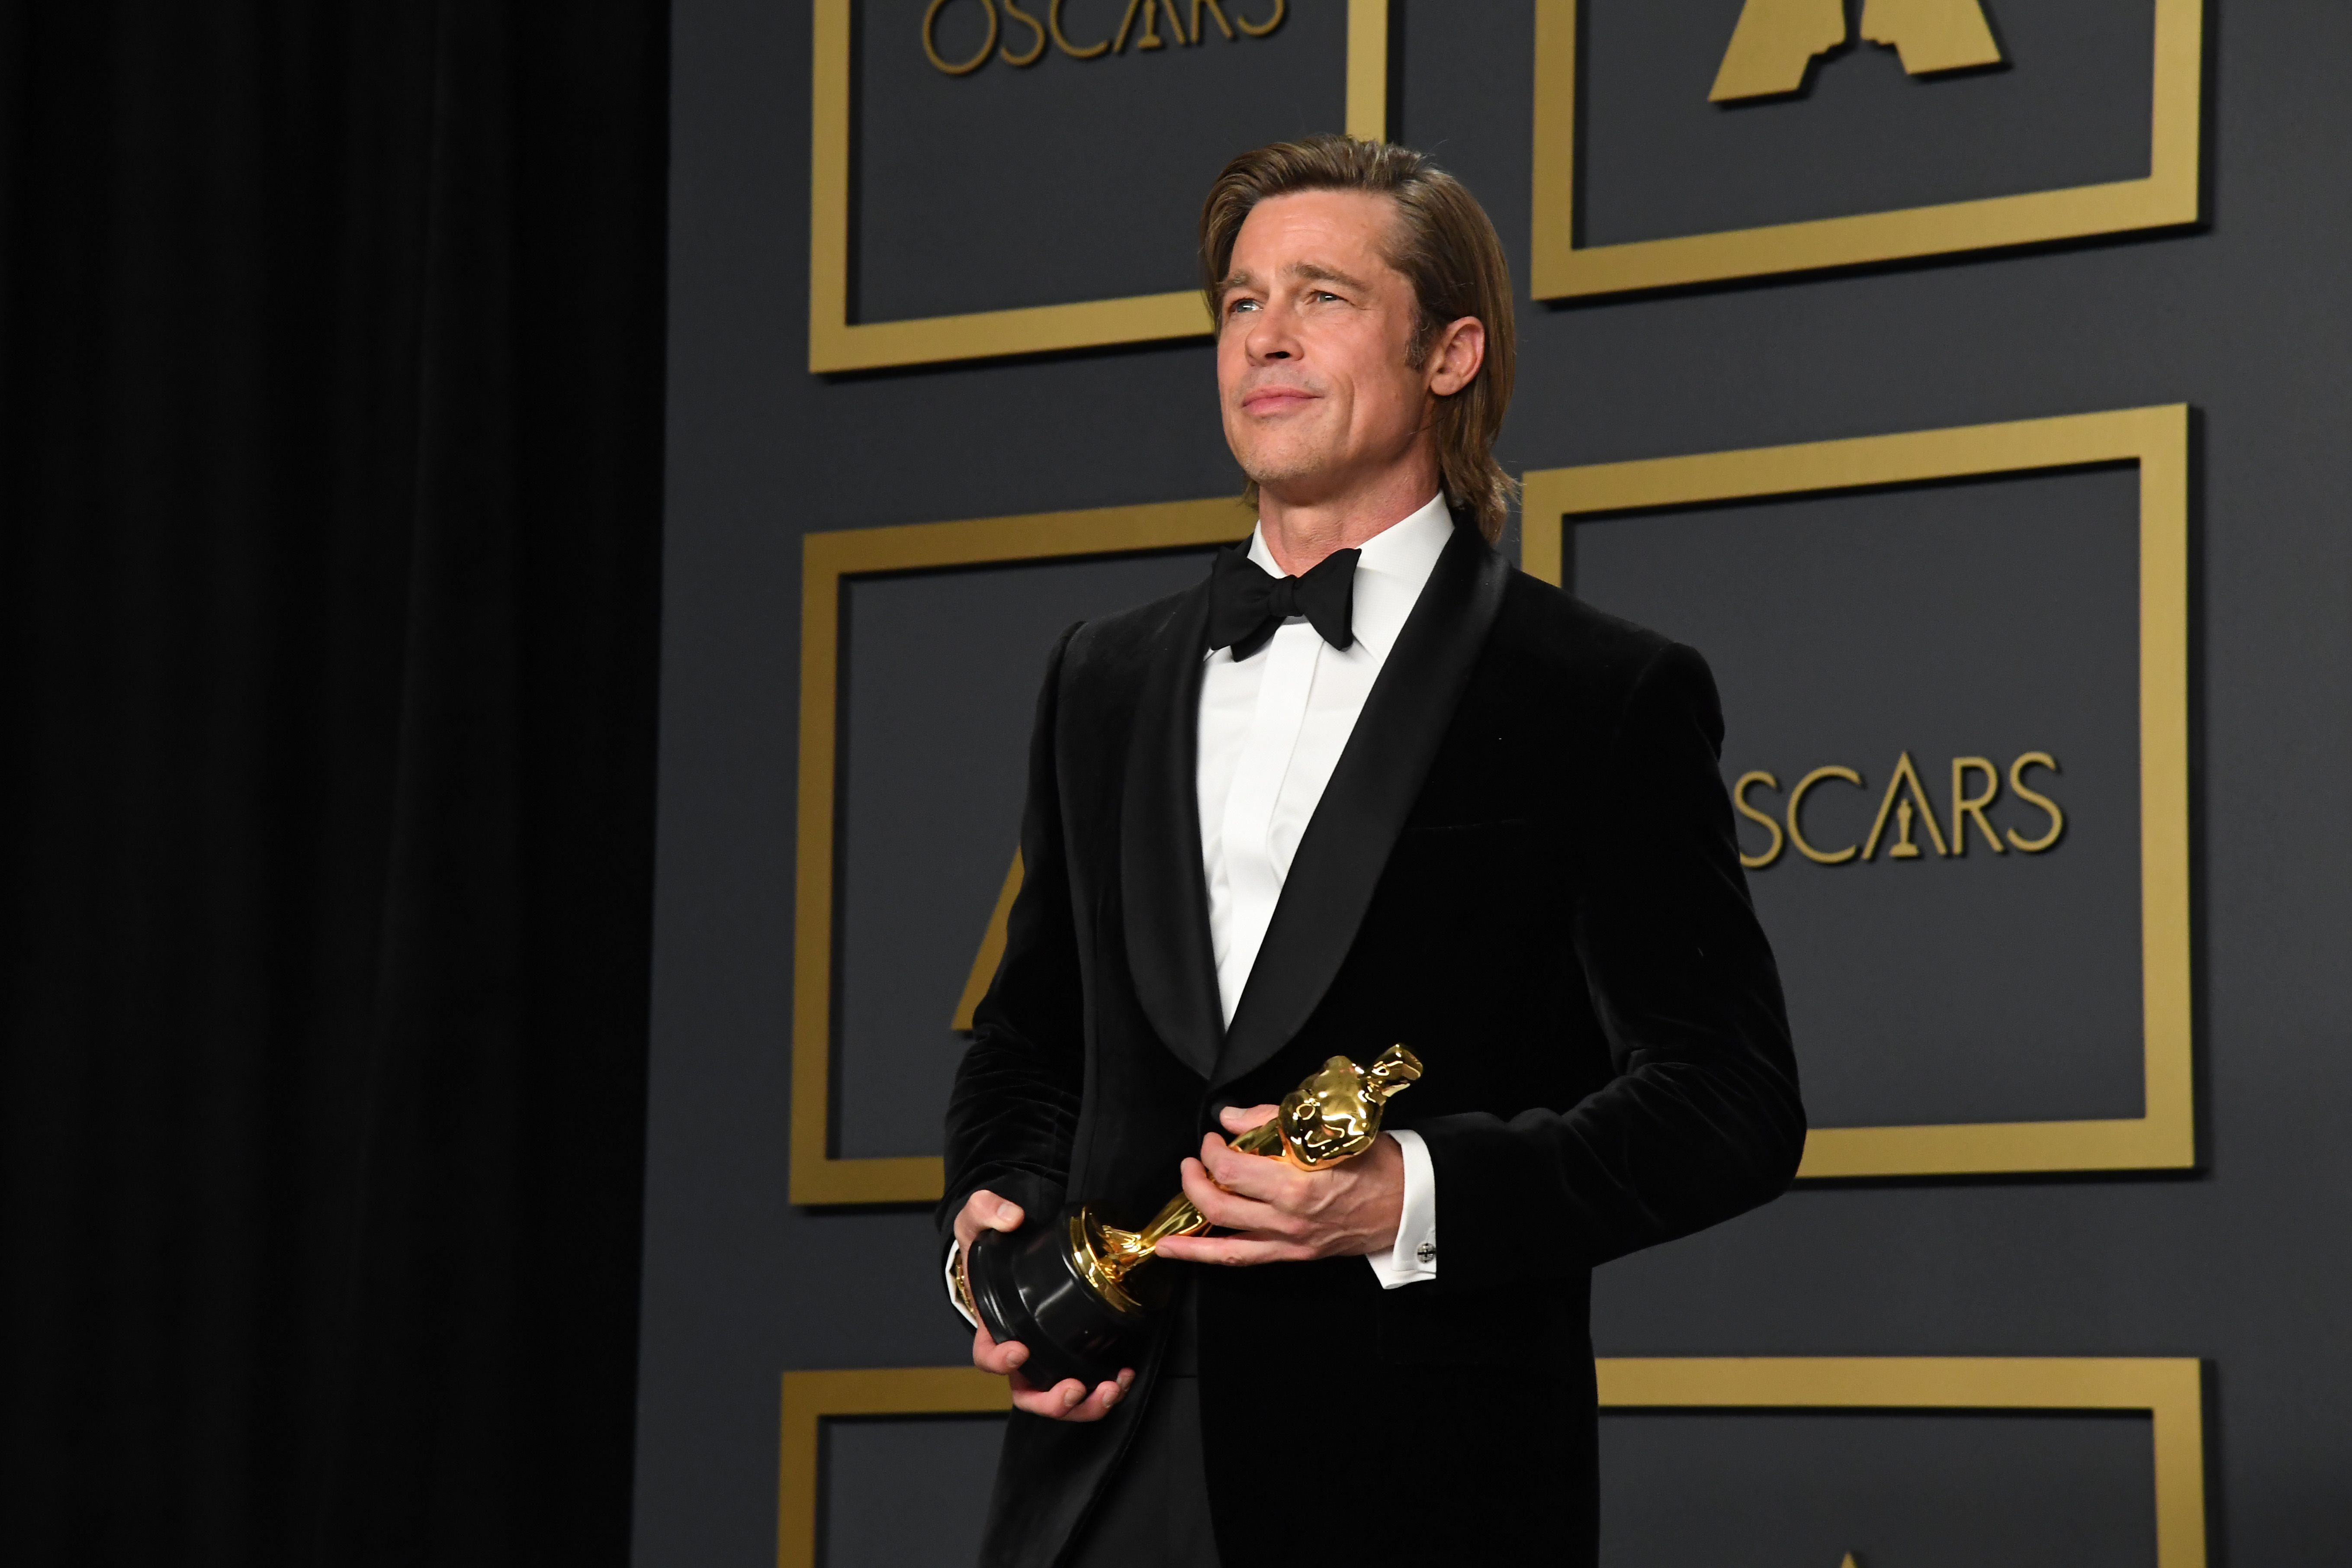 The Black Suit Was The Real Winner At The 2020 Oscars